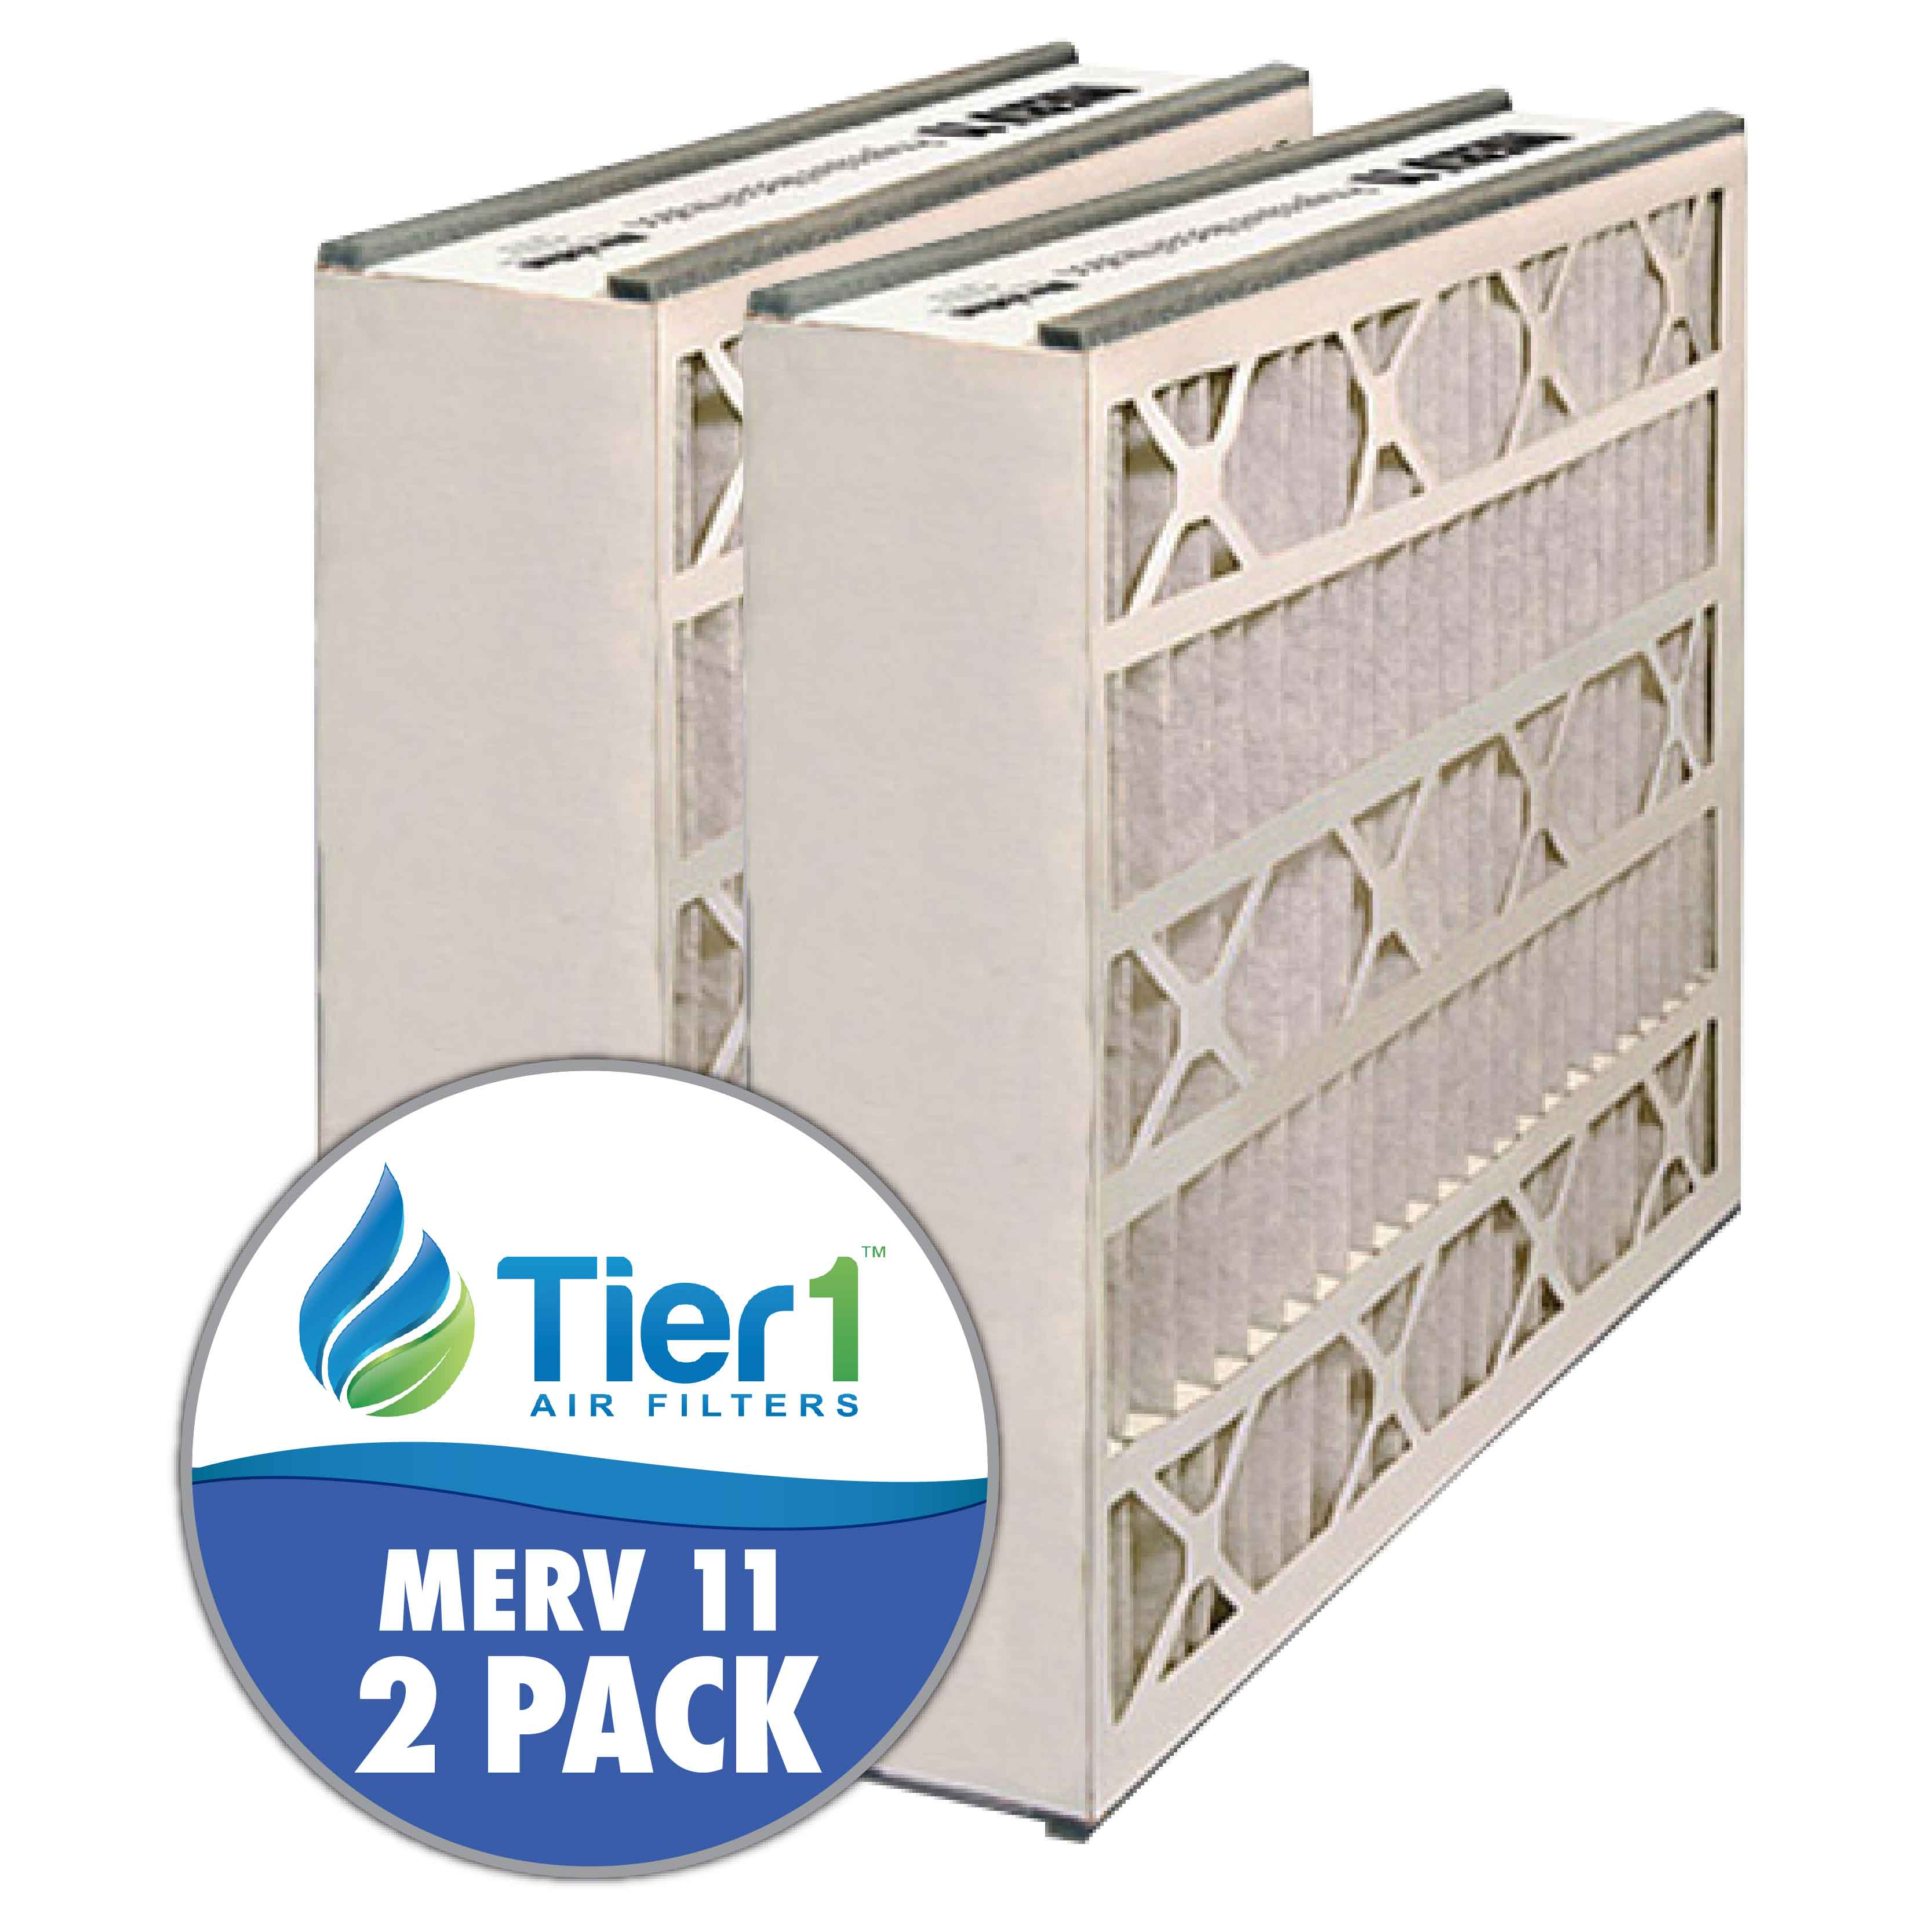 20x20x5 255649-103 & 259112-103 Trion / Air Bear MERV 11 Comparable Air Filter by Tier1 (2-pack) TIER1-RDPAB052020M11